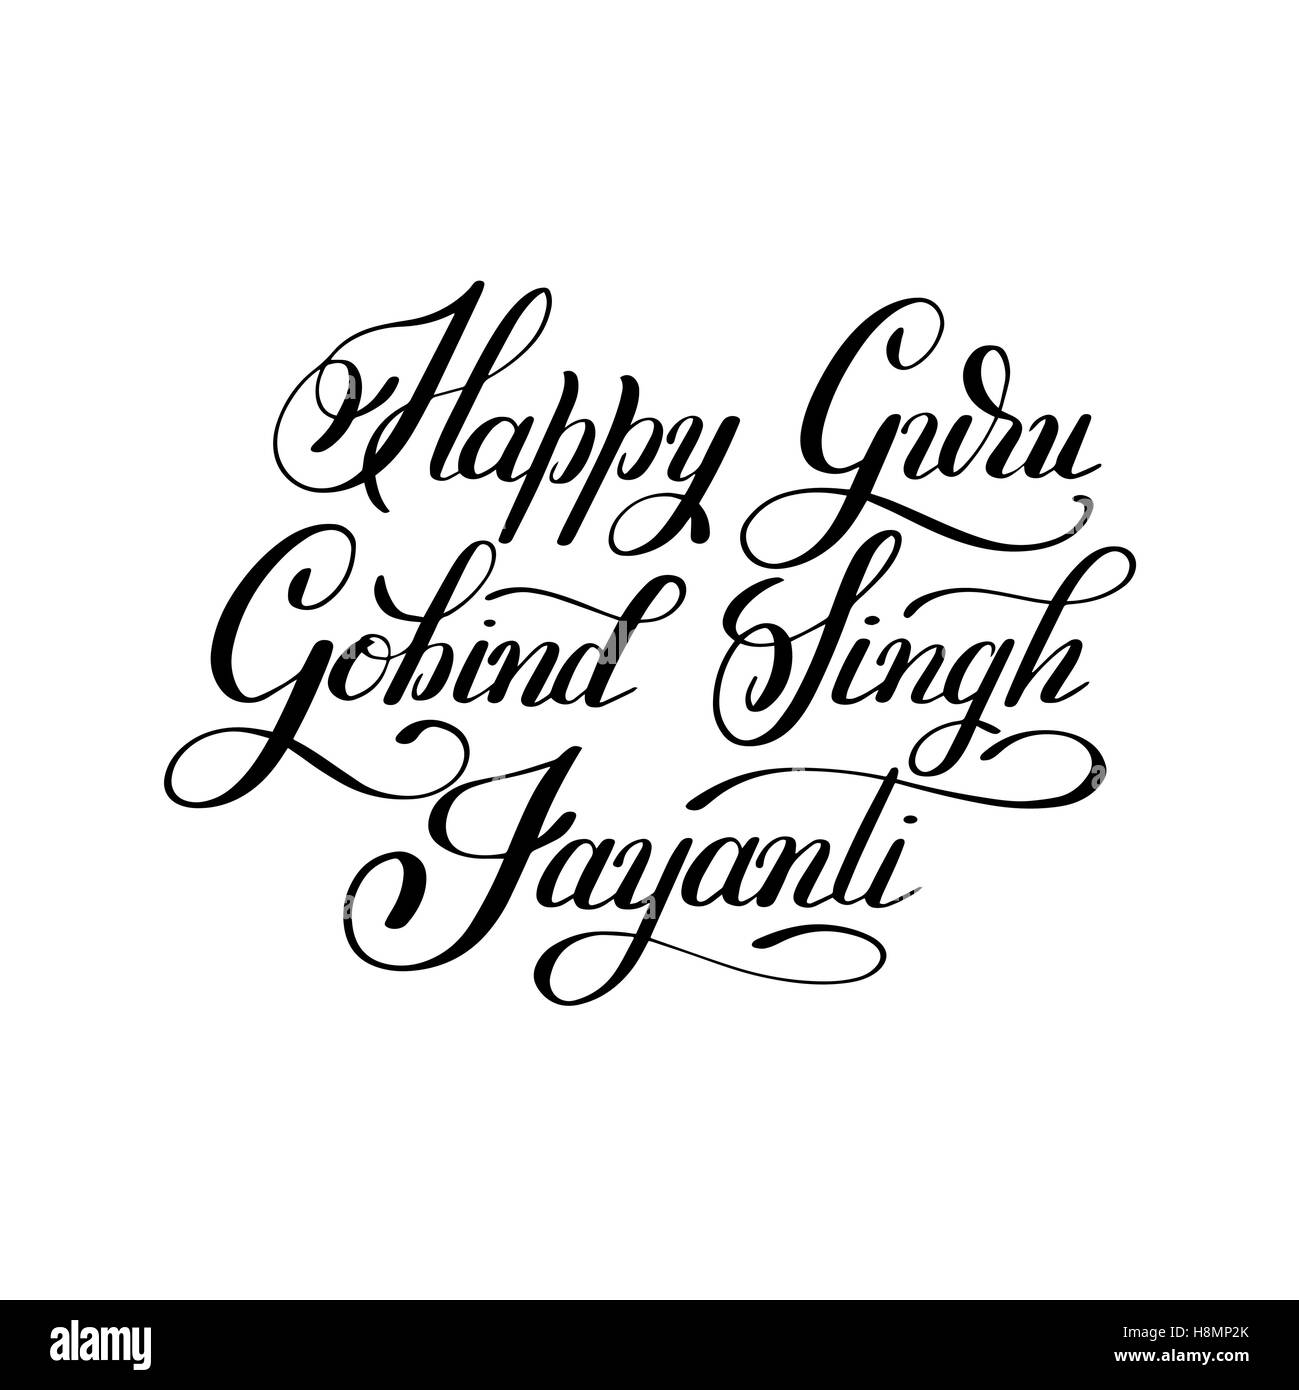 Happy Guru Gobind Singh Jayanti handwritten inscription to india - Stock Vector